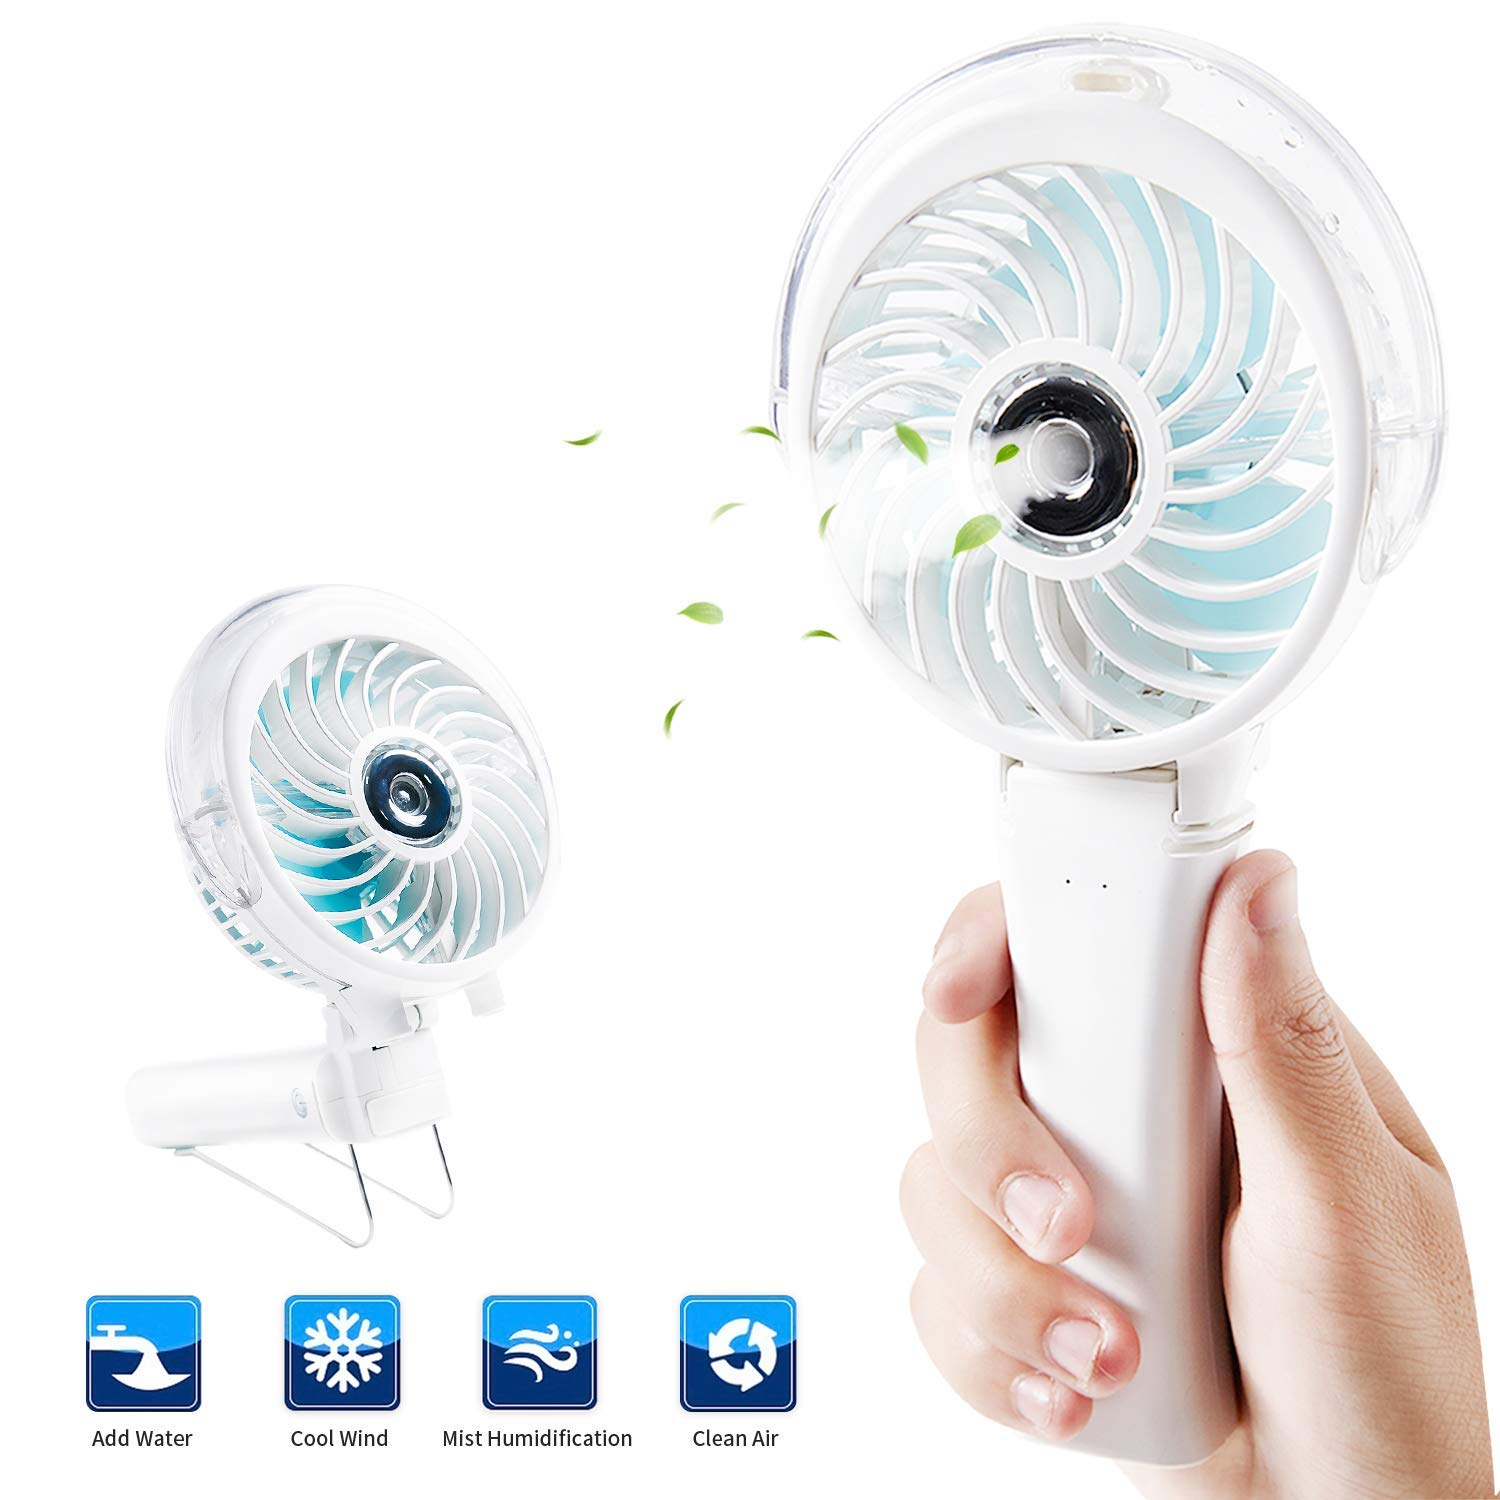 Handheld Misting Fan,Portable Spray Mist Hand Fan,Mister Water Personal Fan,Desk Fan Cooling Humidifier with Colorful Night Light, Rechargeable Battery Operated-USB Powered for Travel